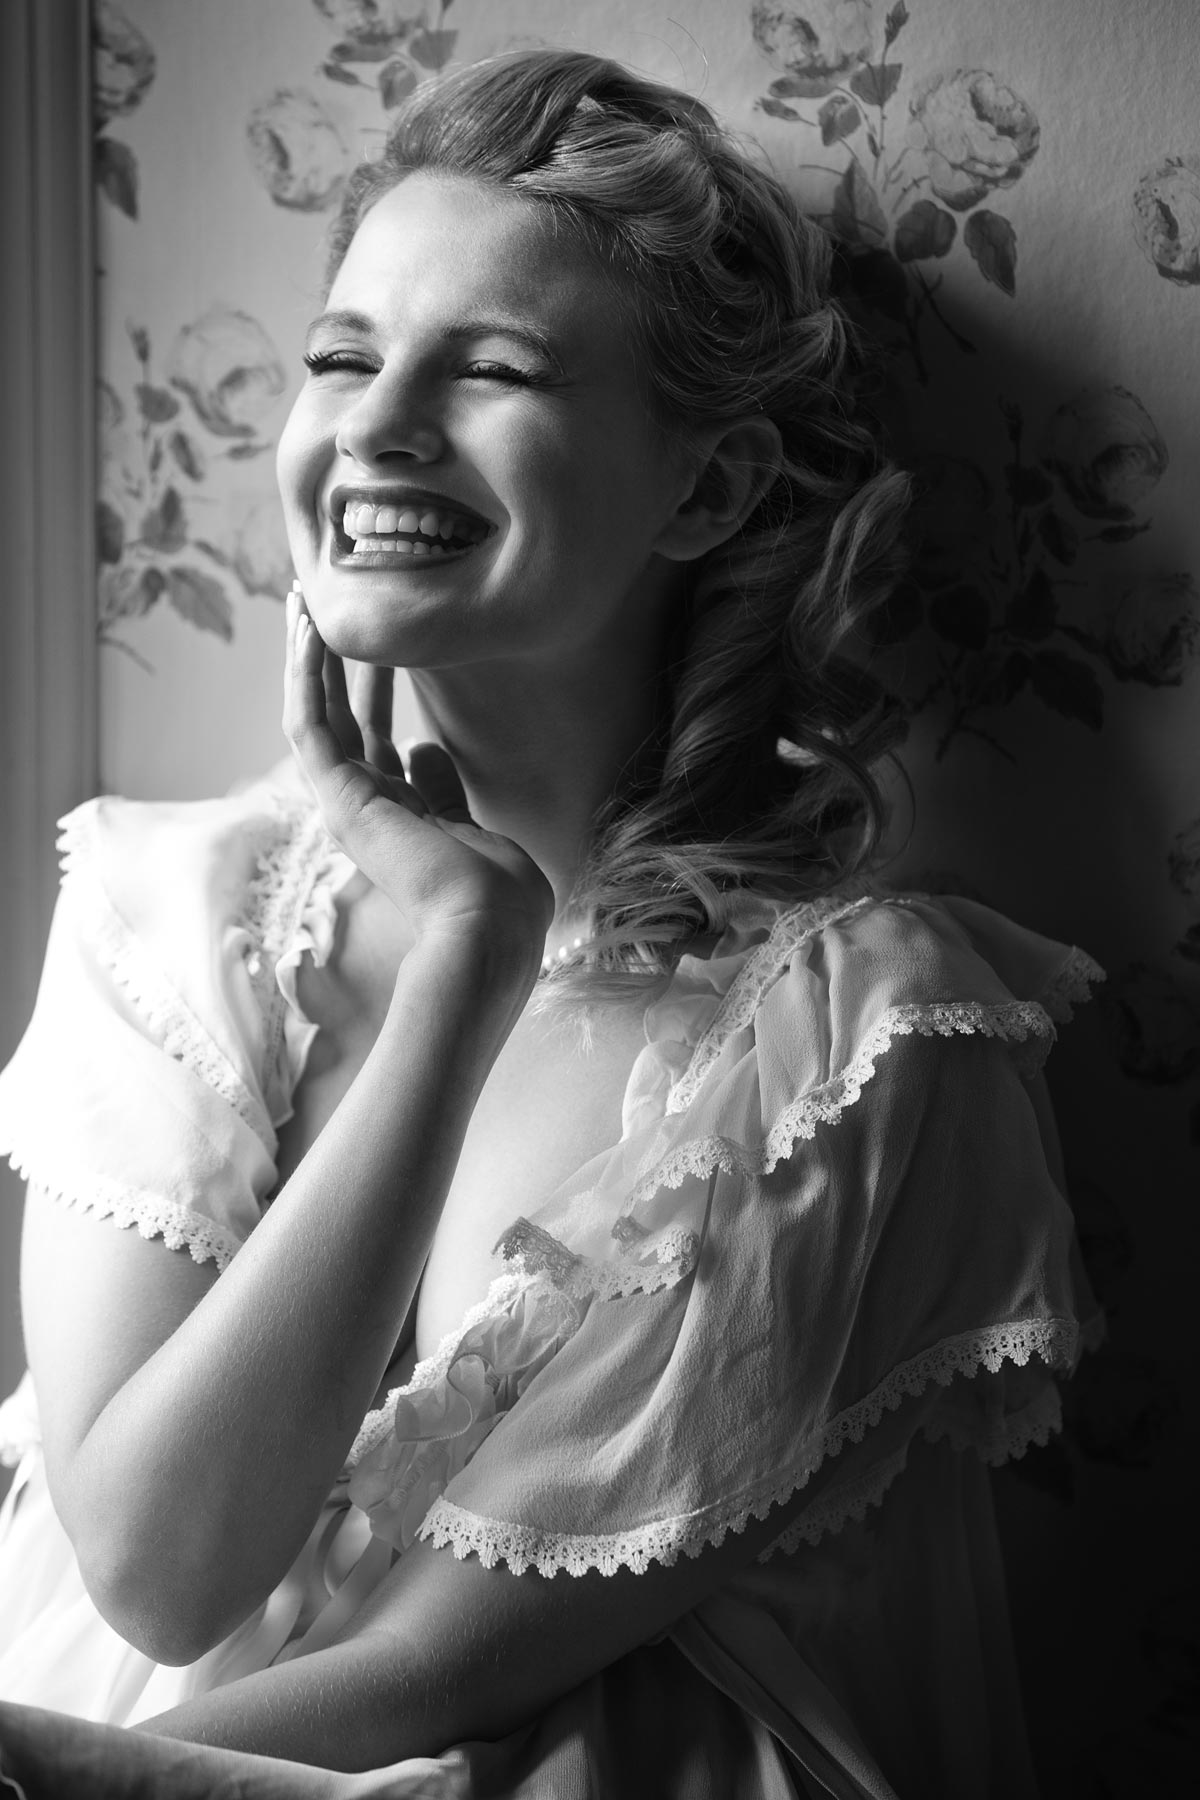 Chloe-Jasmine Whichello laughing in an English Rose setting. Mono print